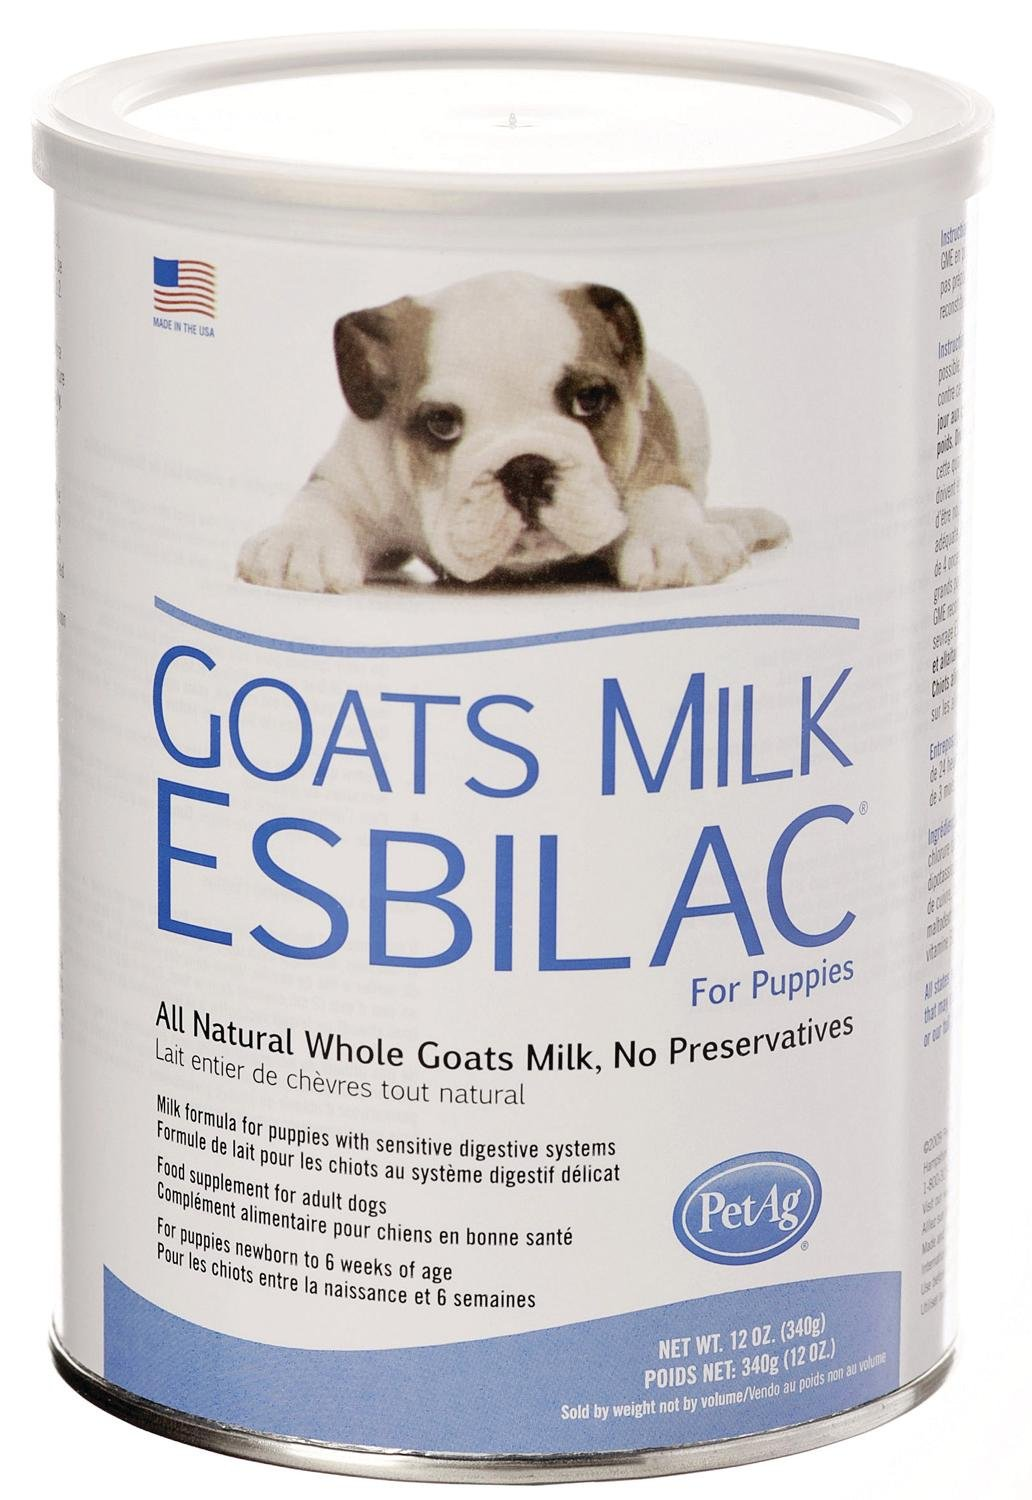 Pet Ag 12 Pack of Goat's Milk Esbilac Powder for Puppies, 12 Ounces Per Canister